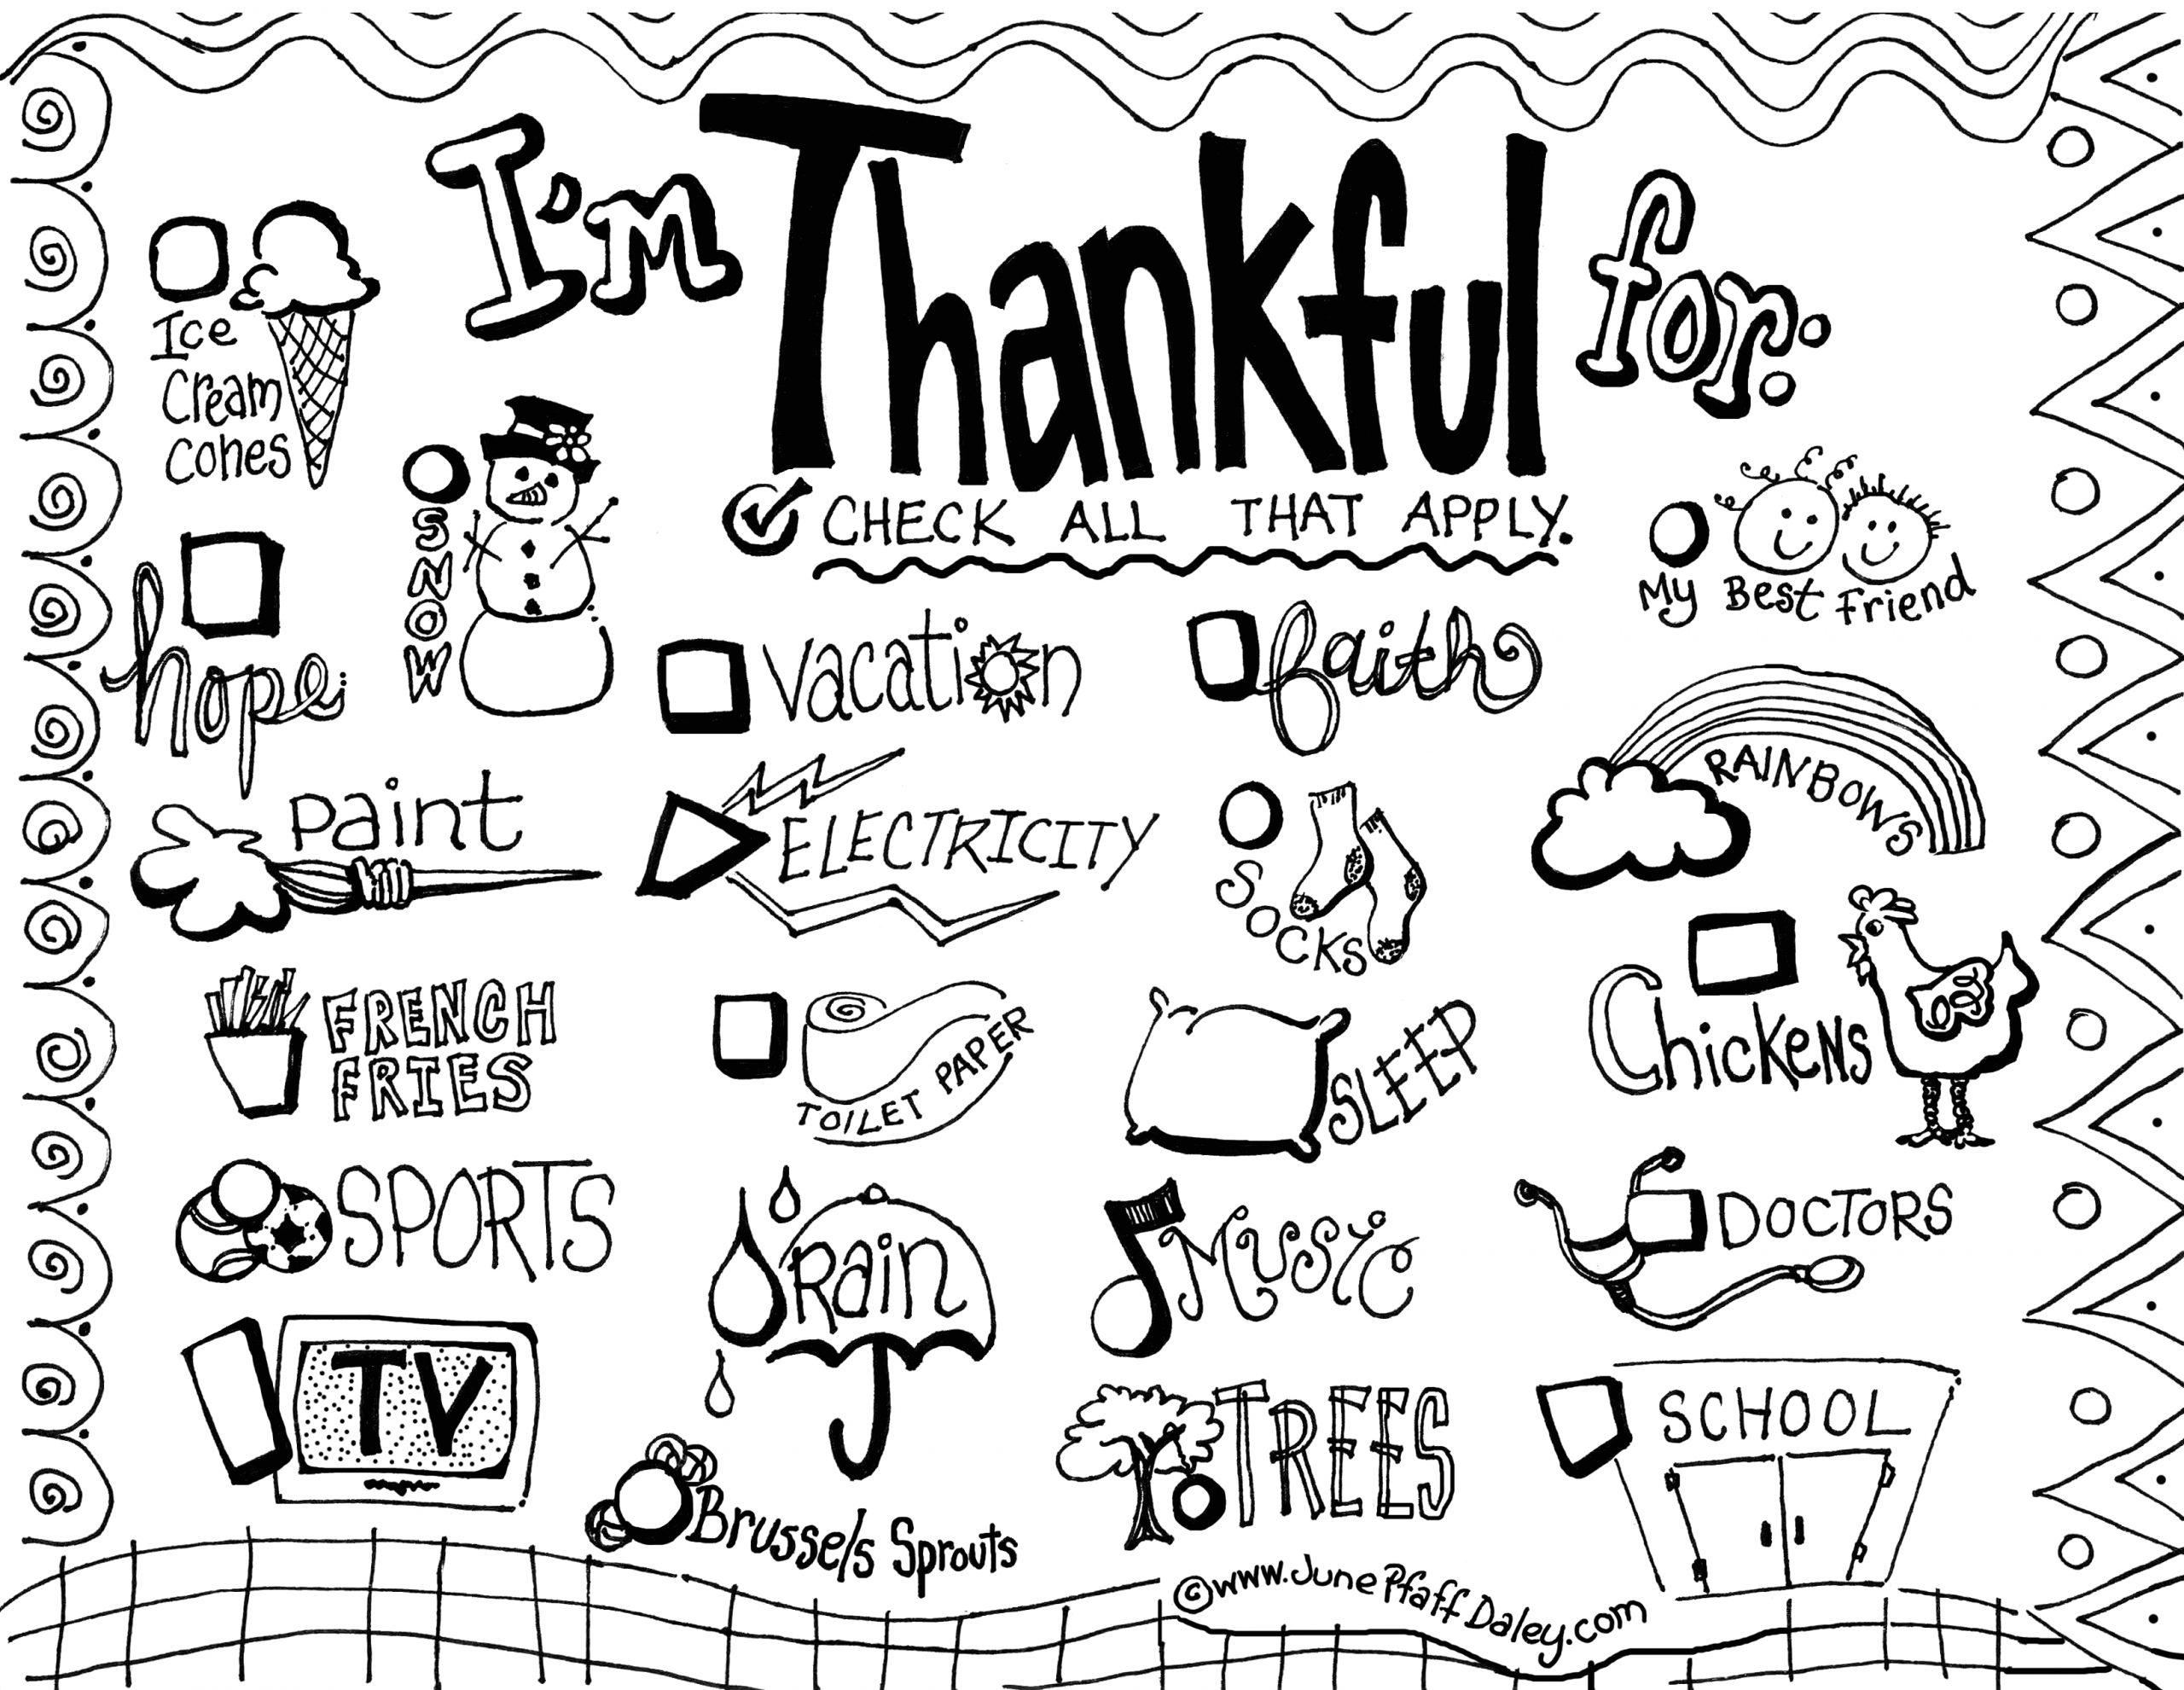 Thanksgiving Coloring Pages I Am Thankful for 6 Best Of I Am Thankful for Placemat Printable I